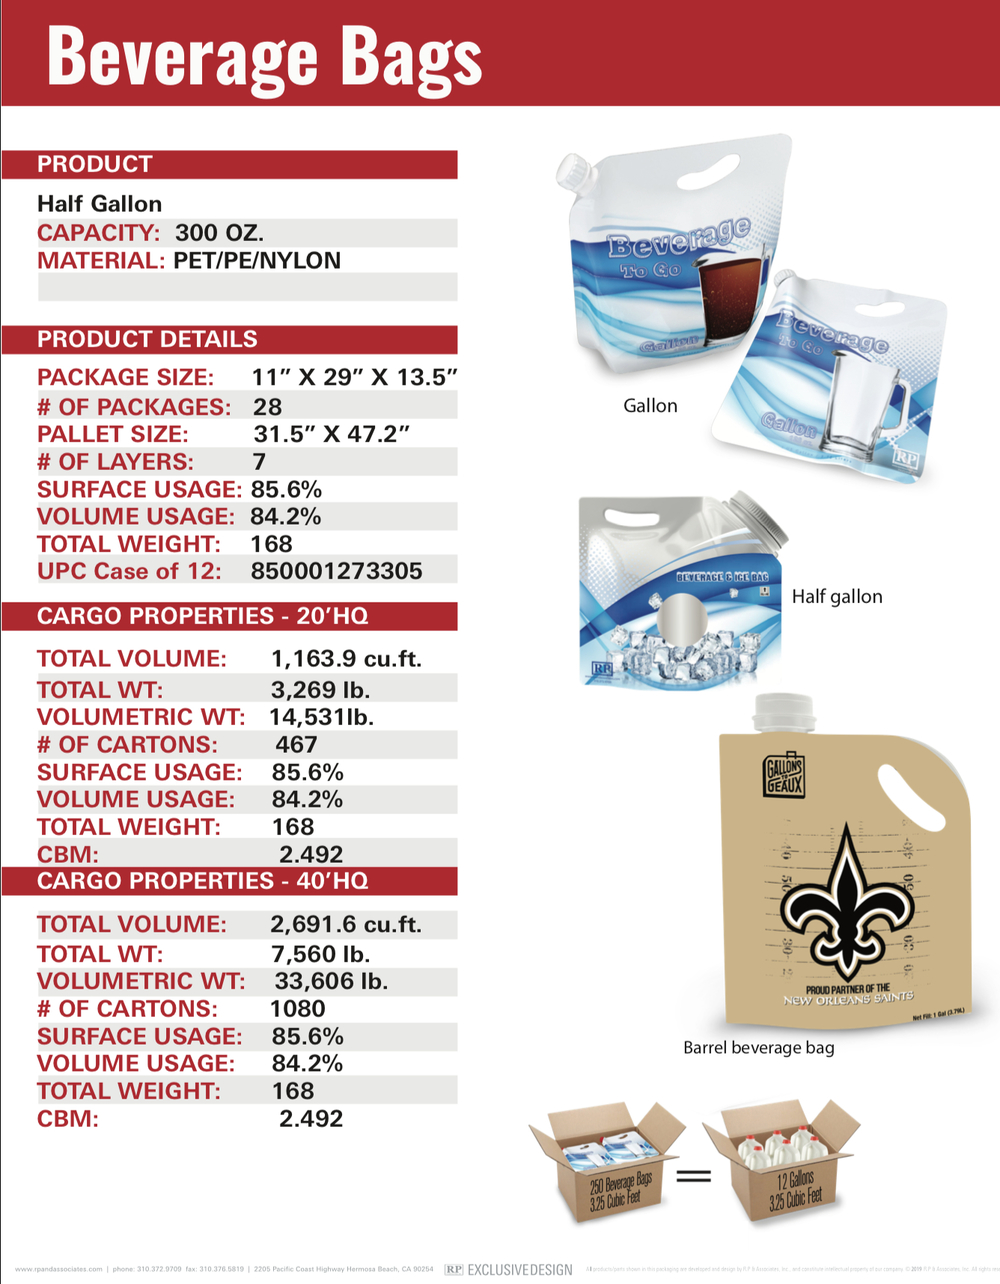 half gallon beverage bag sell sheet